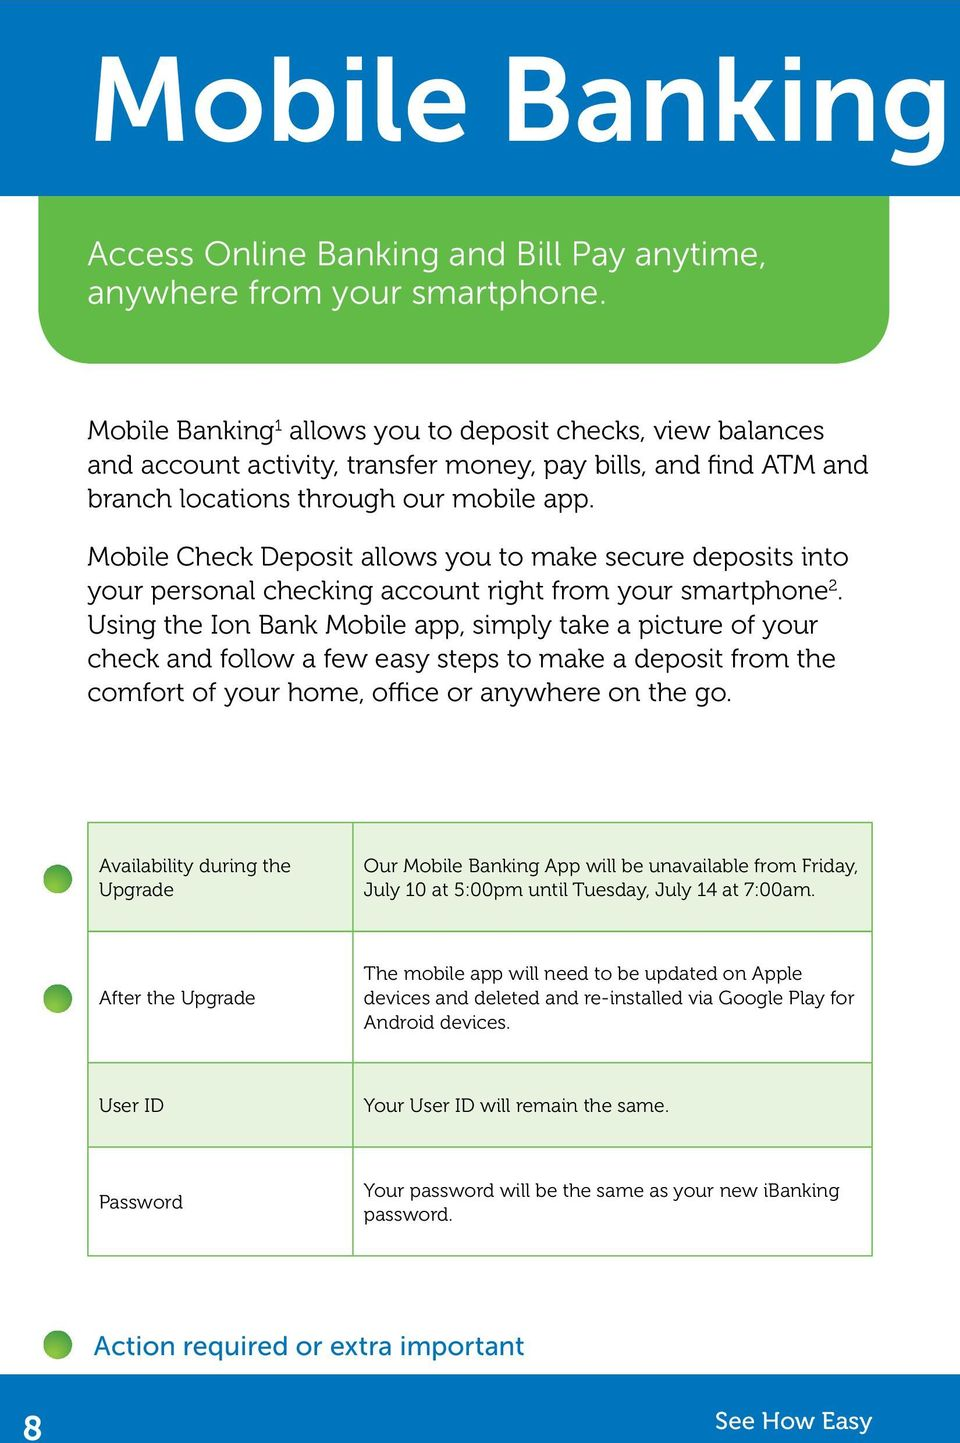 Mobile Check Deposit allows you to make secure deposits into your personal checking account right from your smartphone 2.